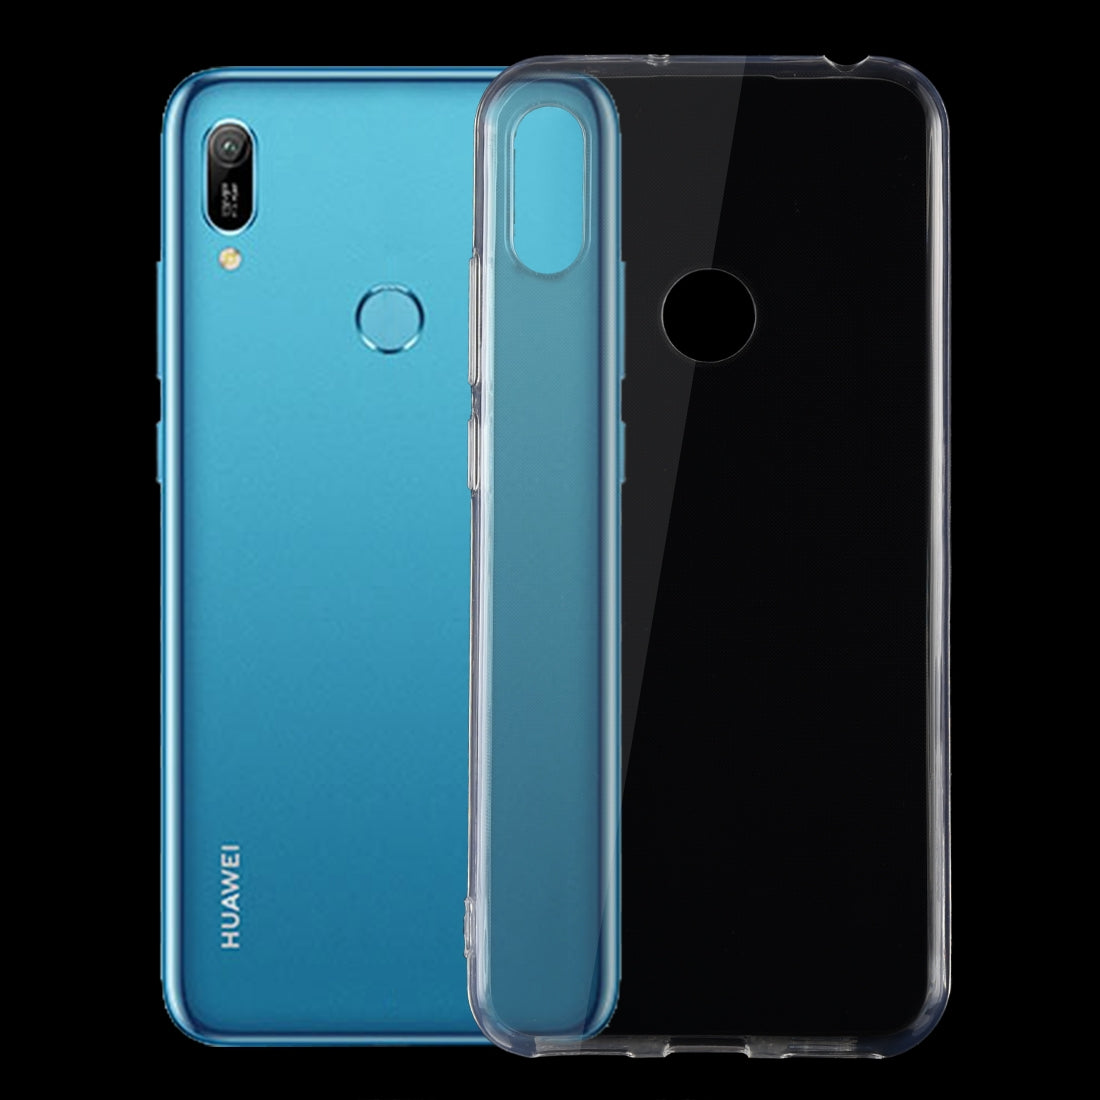 0.75mm Ultrathin Transparent TPU Soft Protective Case for Huawei Y6 2019